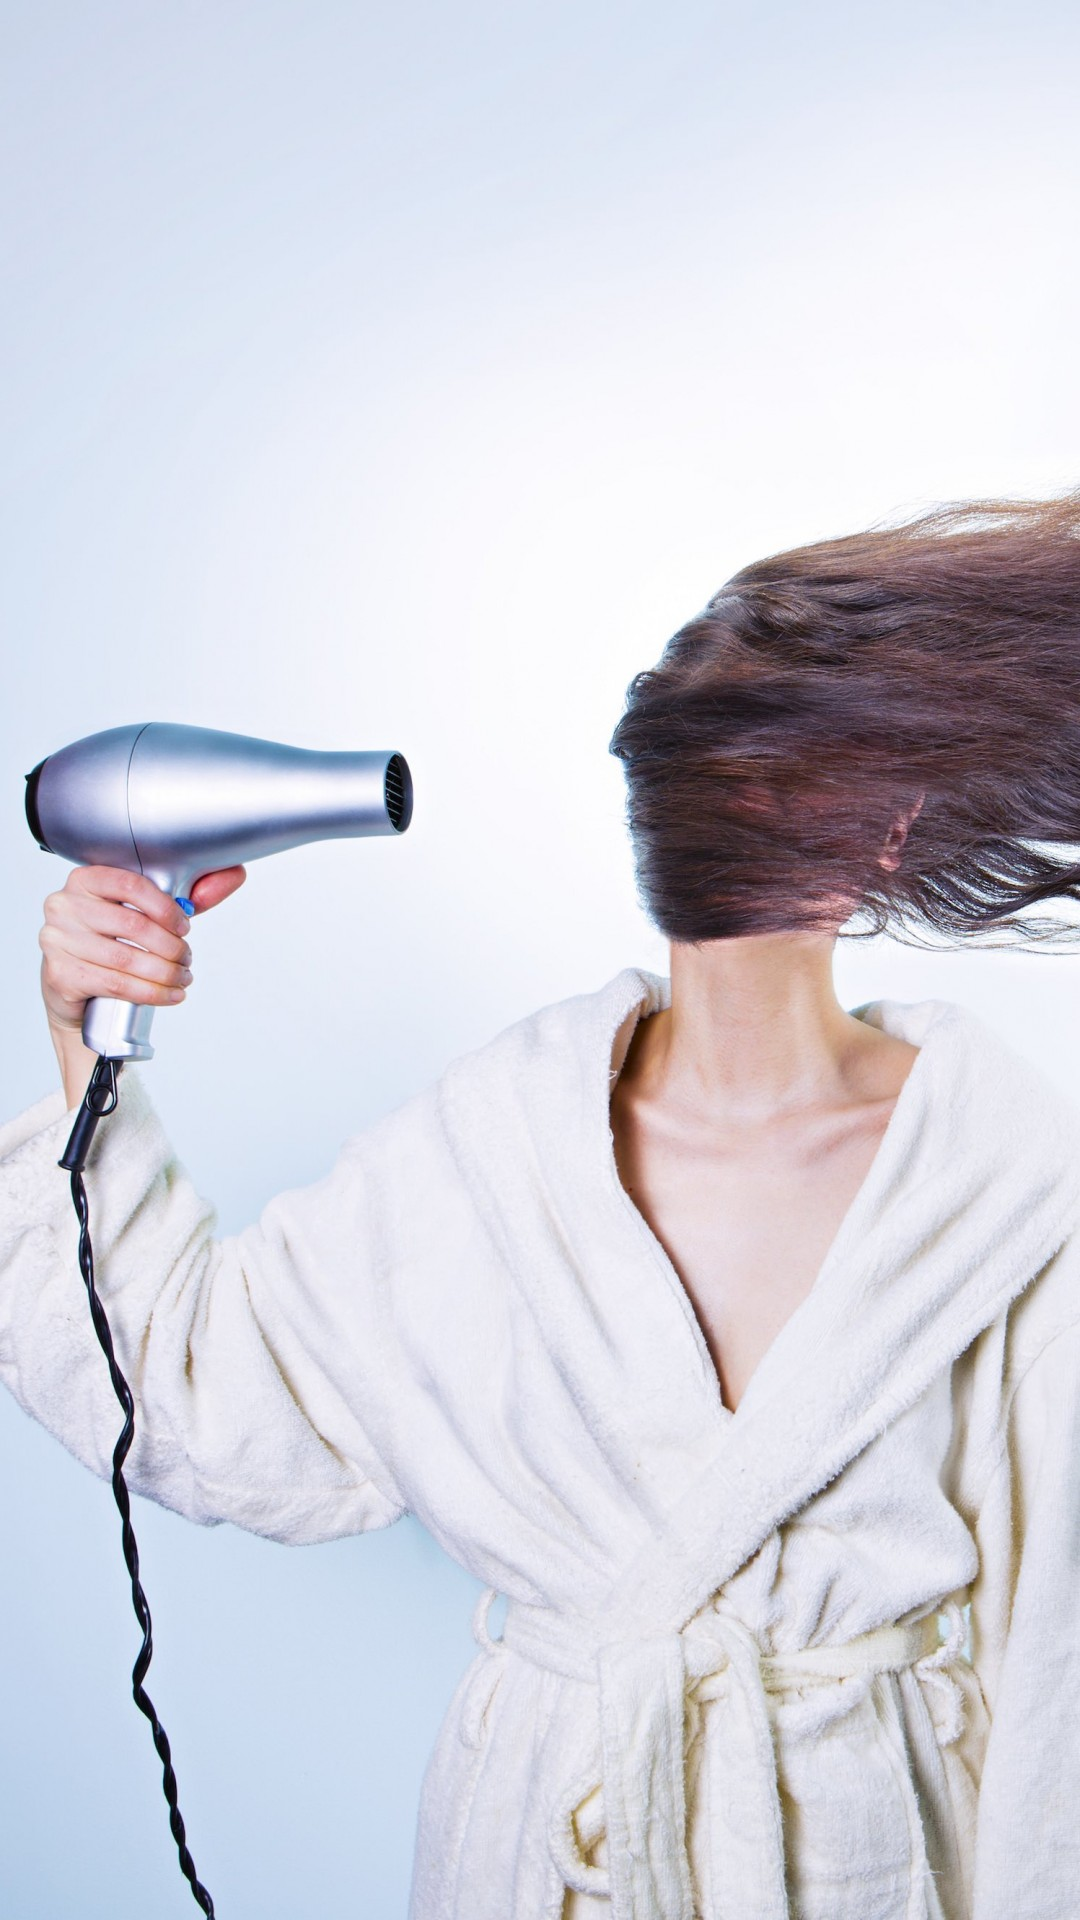 Powerful Hair Dryer Wallpaper for SAMSUNG Galaxy Note 3